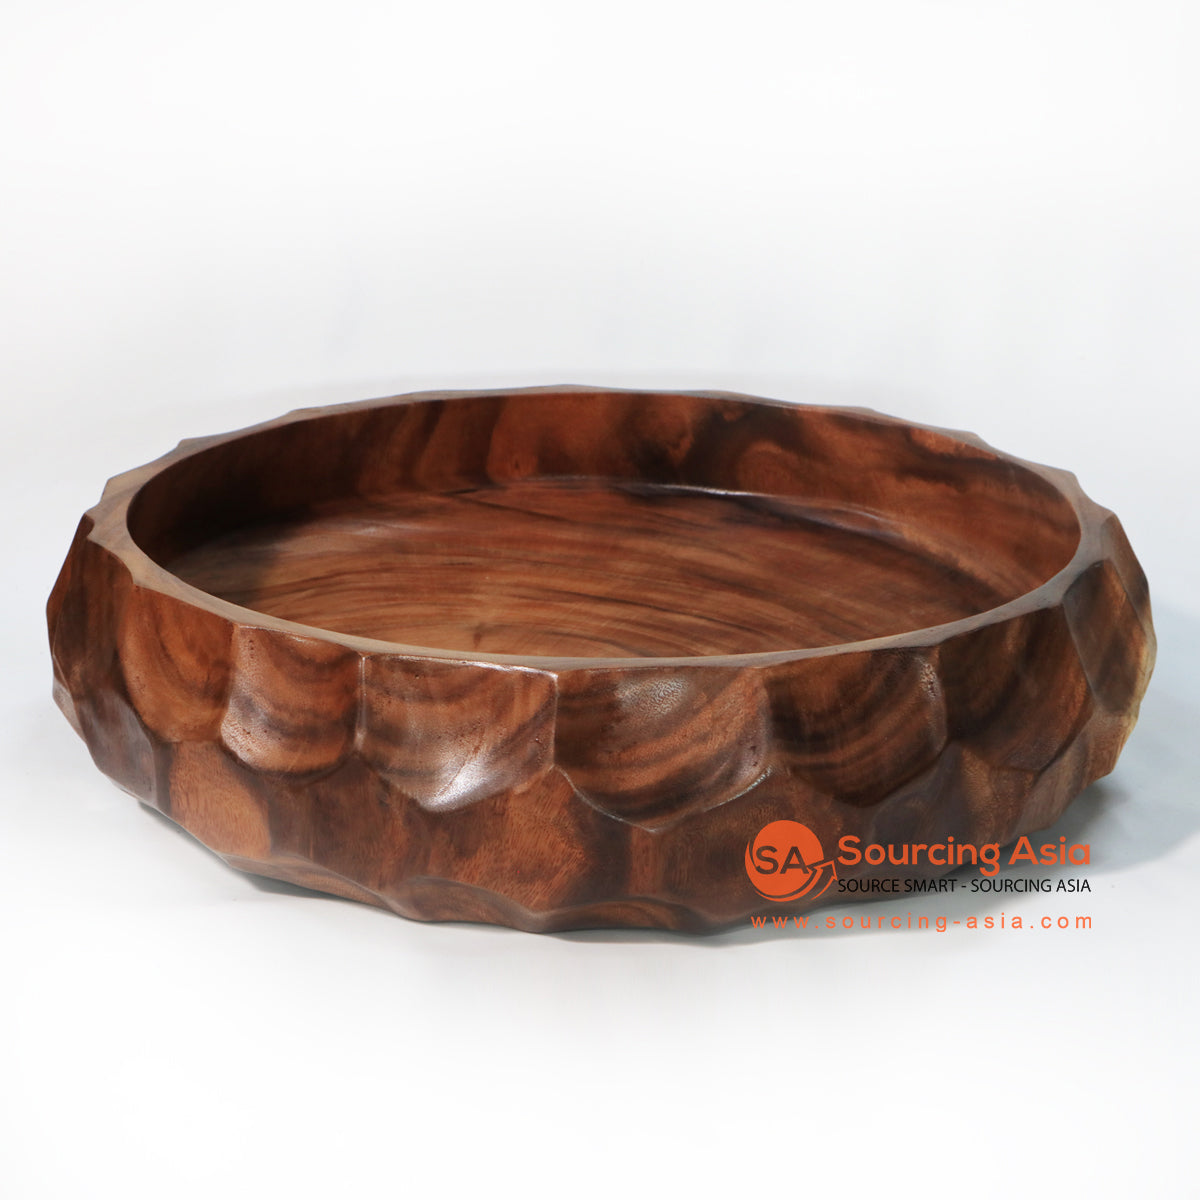 BMWC043 SCALLOPED SUAR WOOD BOWL